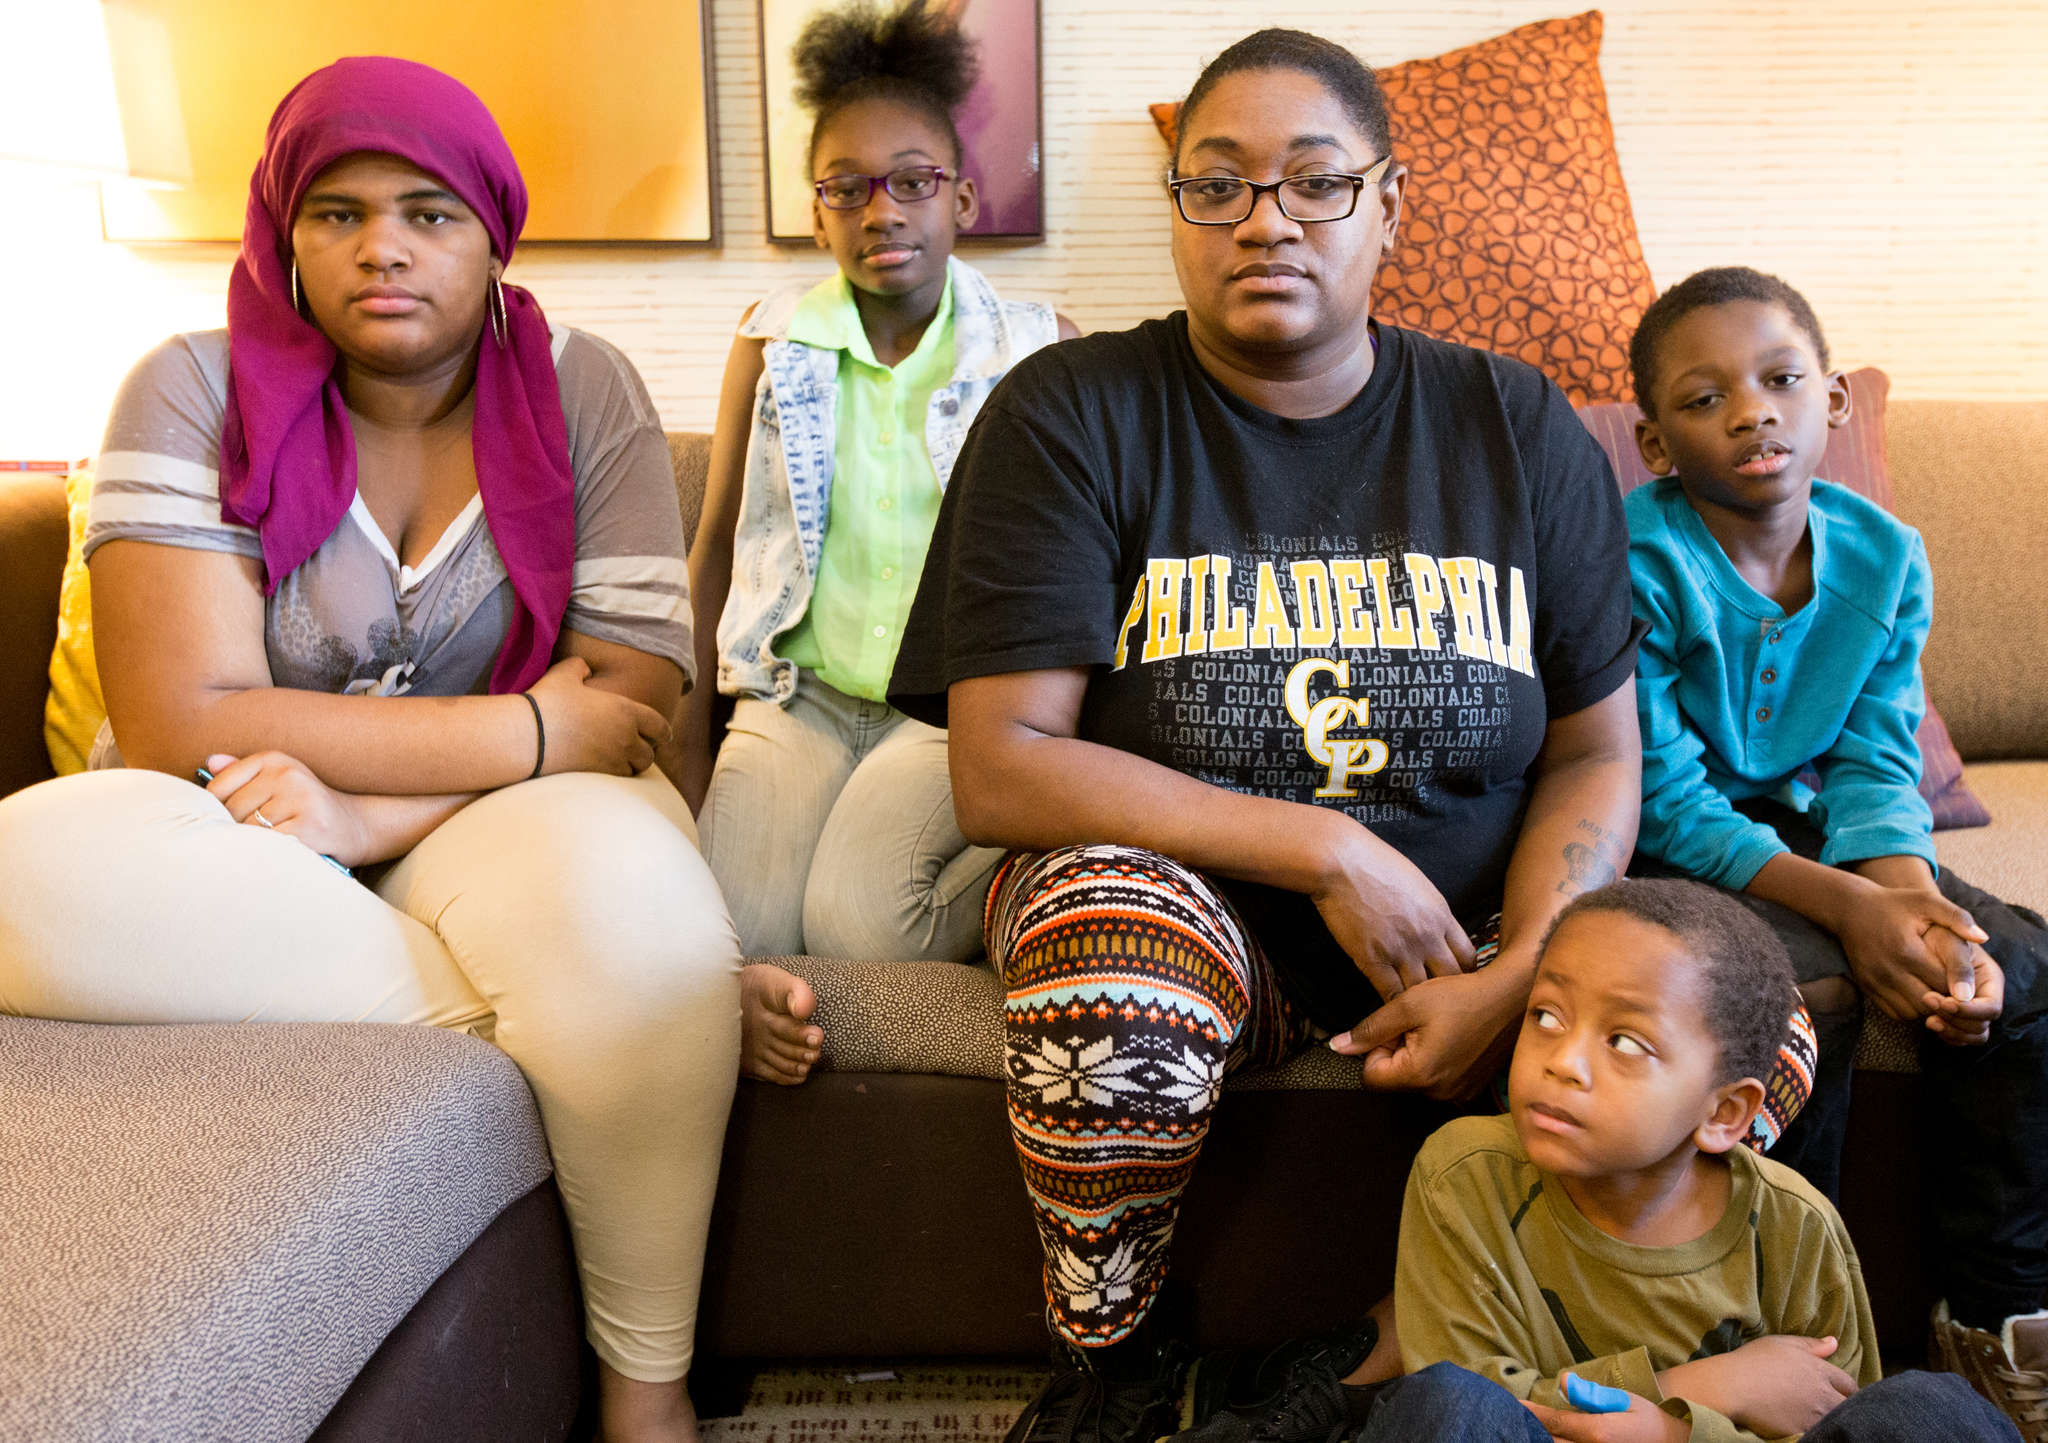 J´Naiha Lamboy (from left), Lyric Cogdell, Maloni Greene, Robert Cogdell, and Kamari Brant are staying at a Residence Inn after their home was damaged in a fire. JESSICA GRIFFIN / Staff Photographer